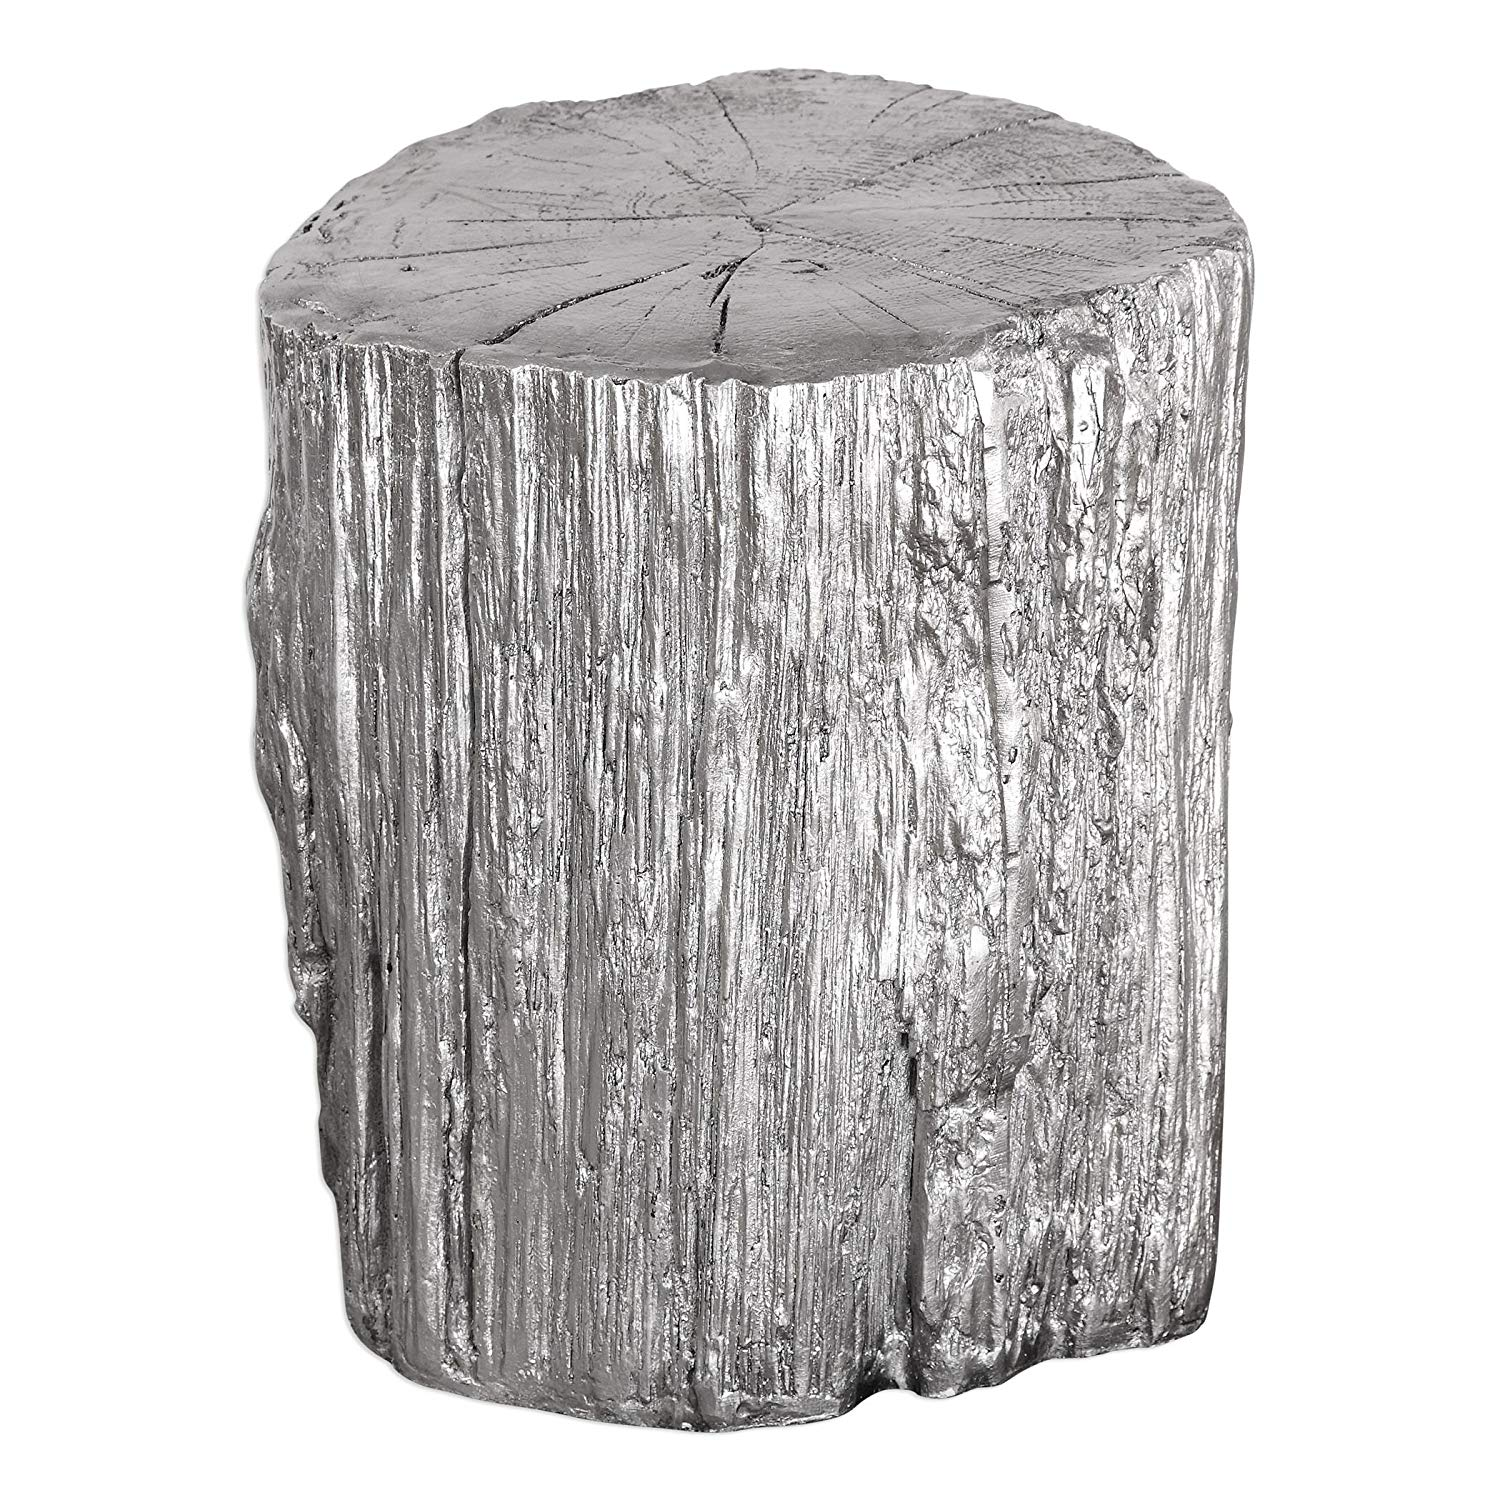 elegant silver tree stump accent table pedestal round trunk faux bois naturalist kitchen dining napkins stone coffee rectangular outdoor umbrellas blue lacquer side dorm stuff